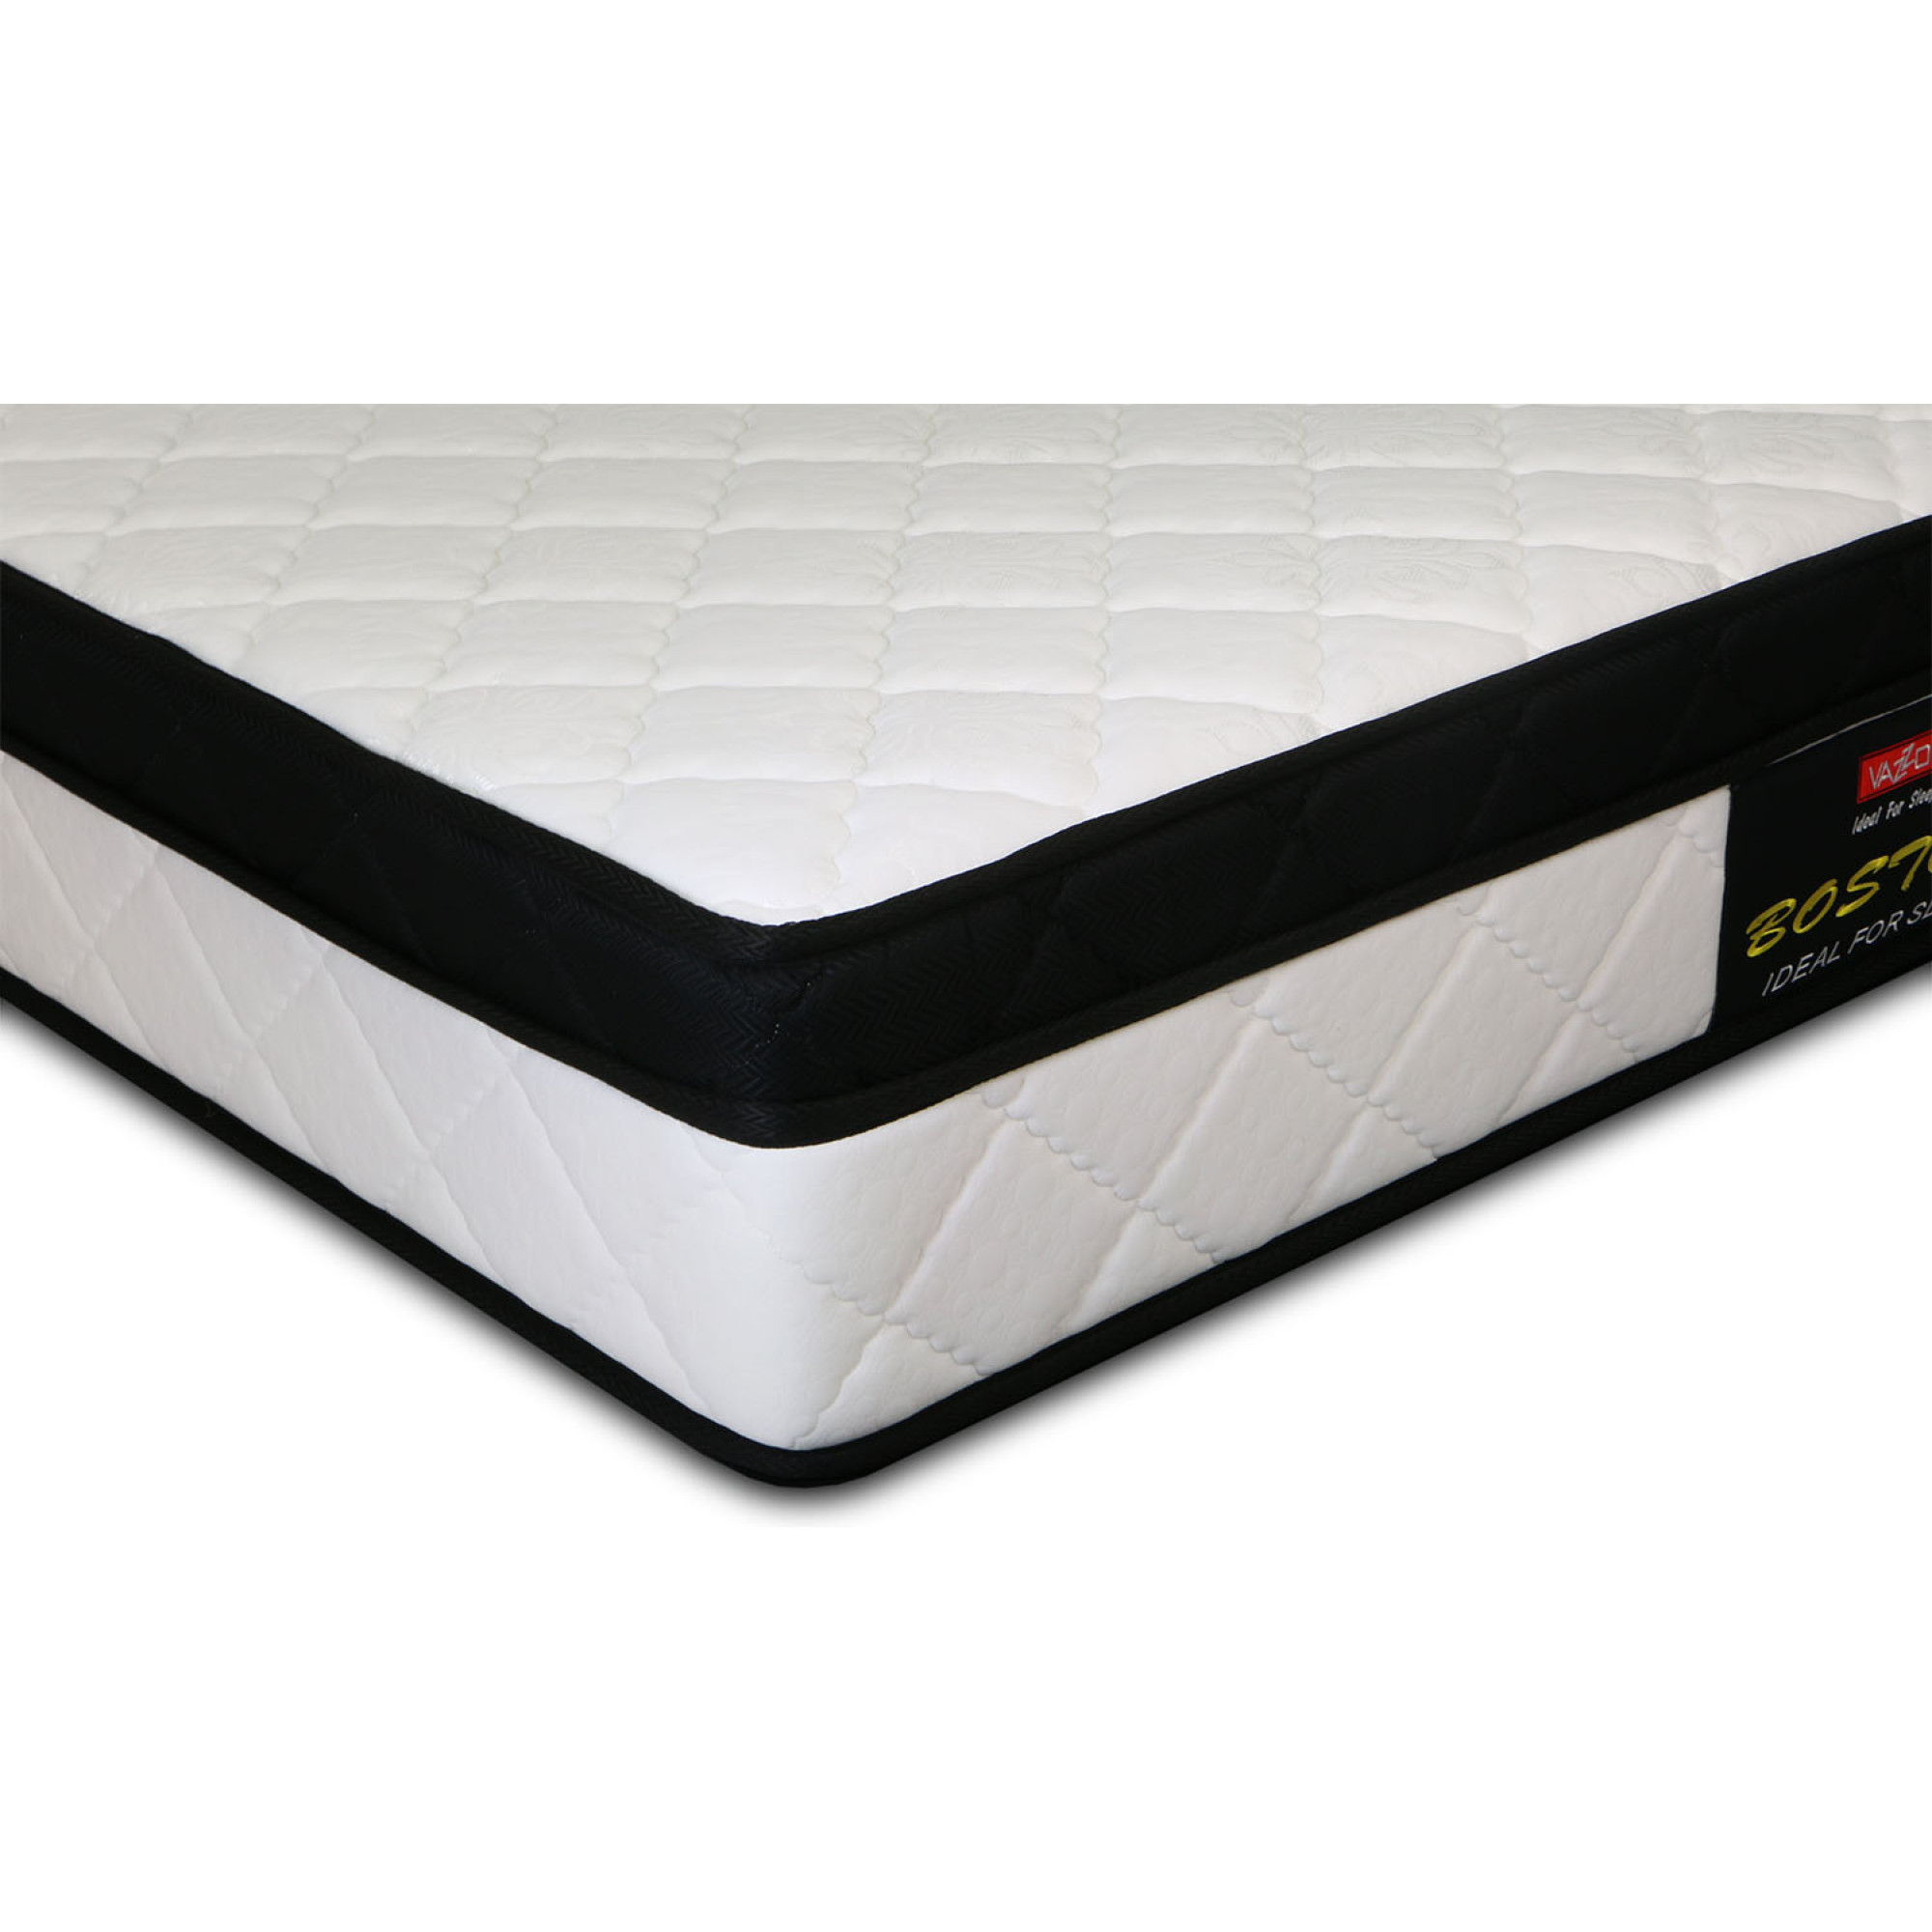 mattress awesome review memory striking brands inspirational futons size protector ergoflex cool full revi hayneedle of foam surprising gel best classic futon in innovative ventilated